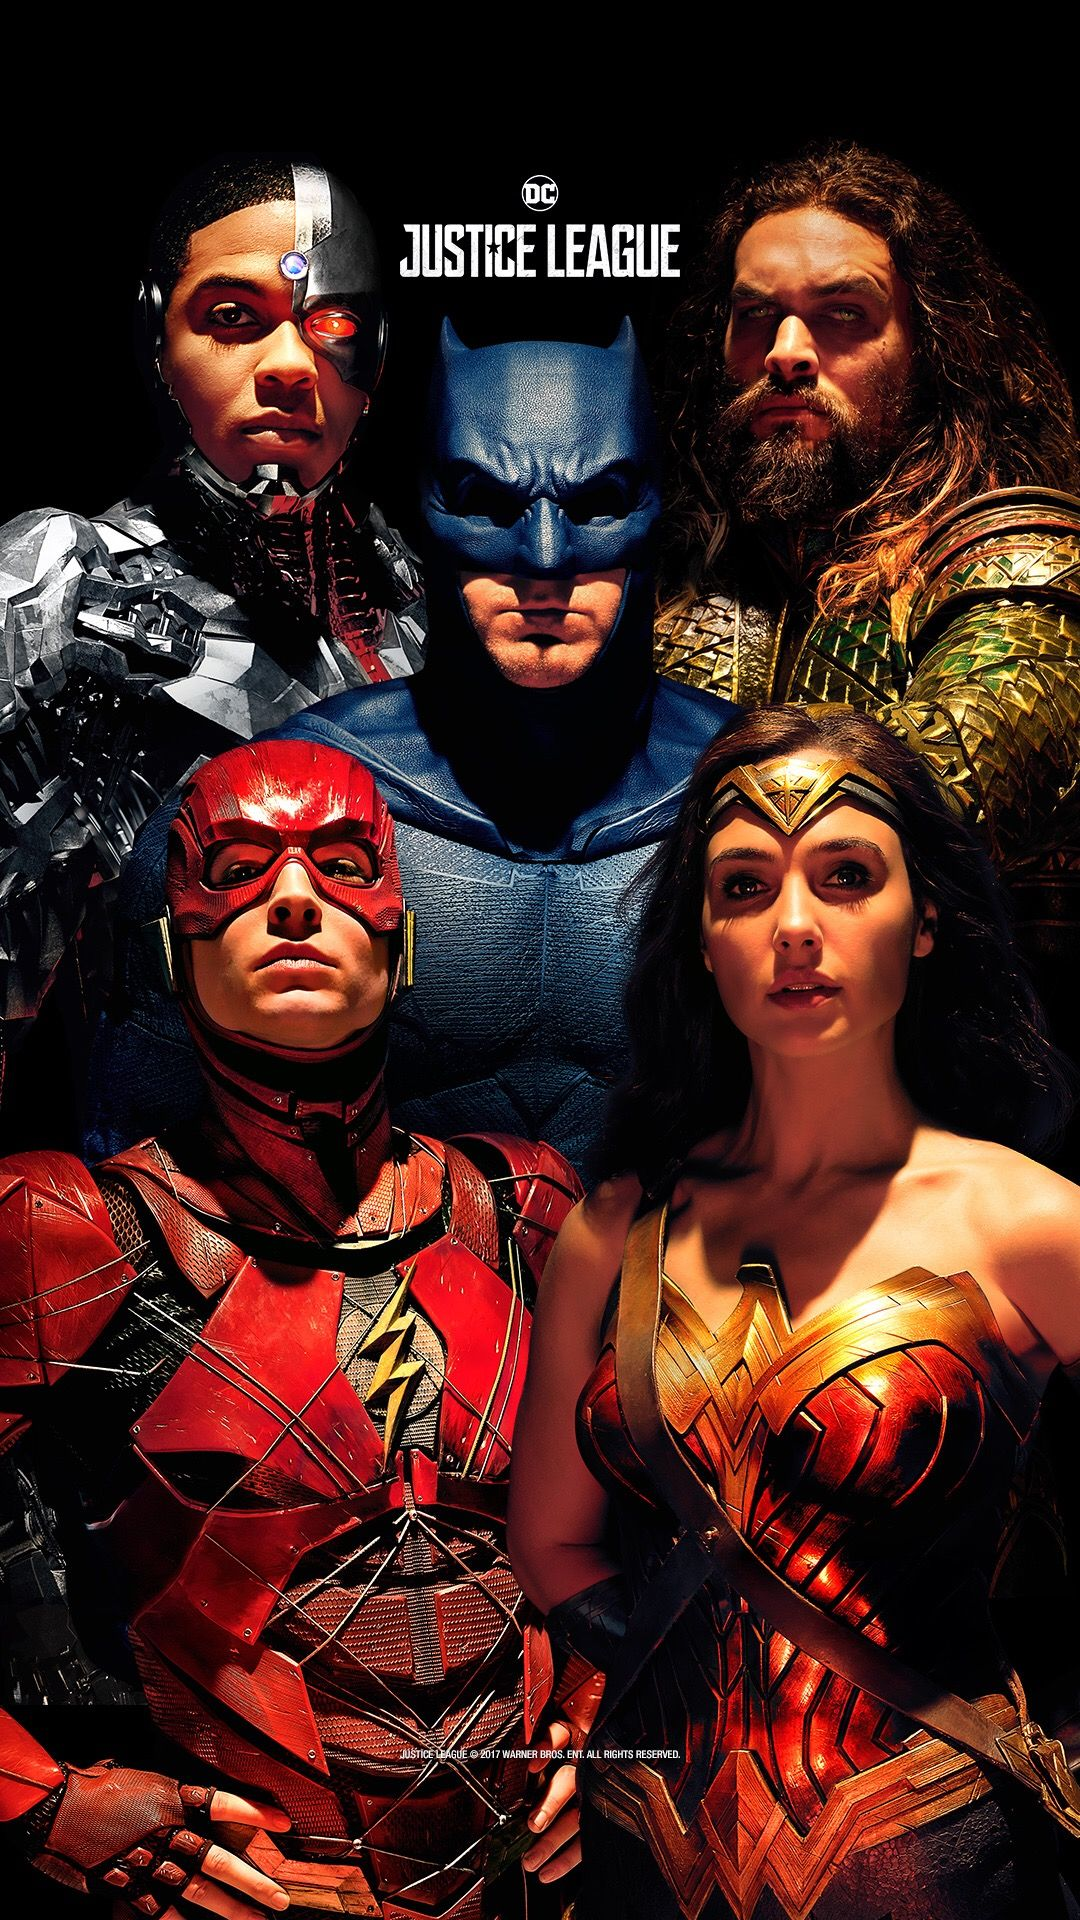 foto de Pin by Lesweldster on DC Comics Justice league 2017 Justice league characters Justice league